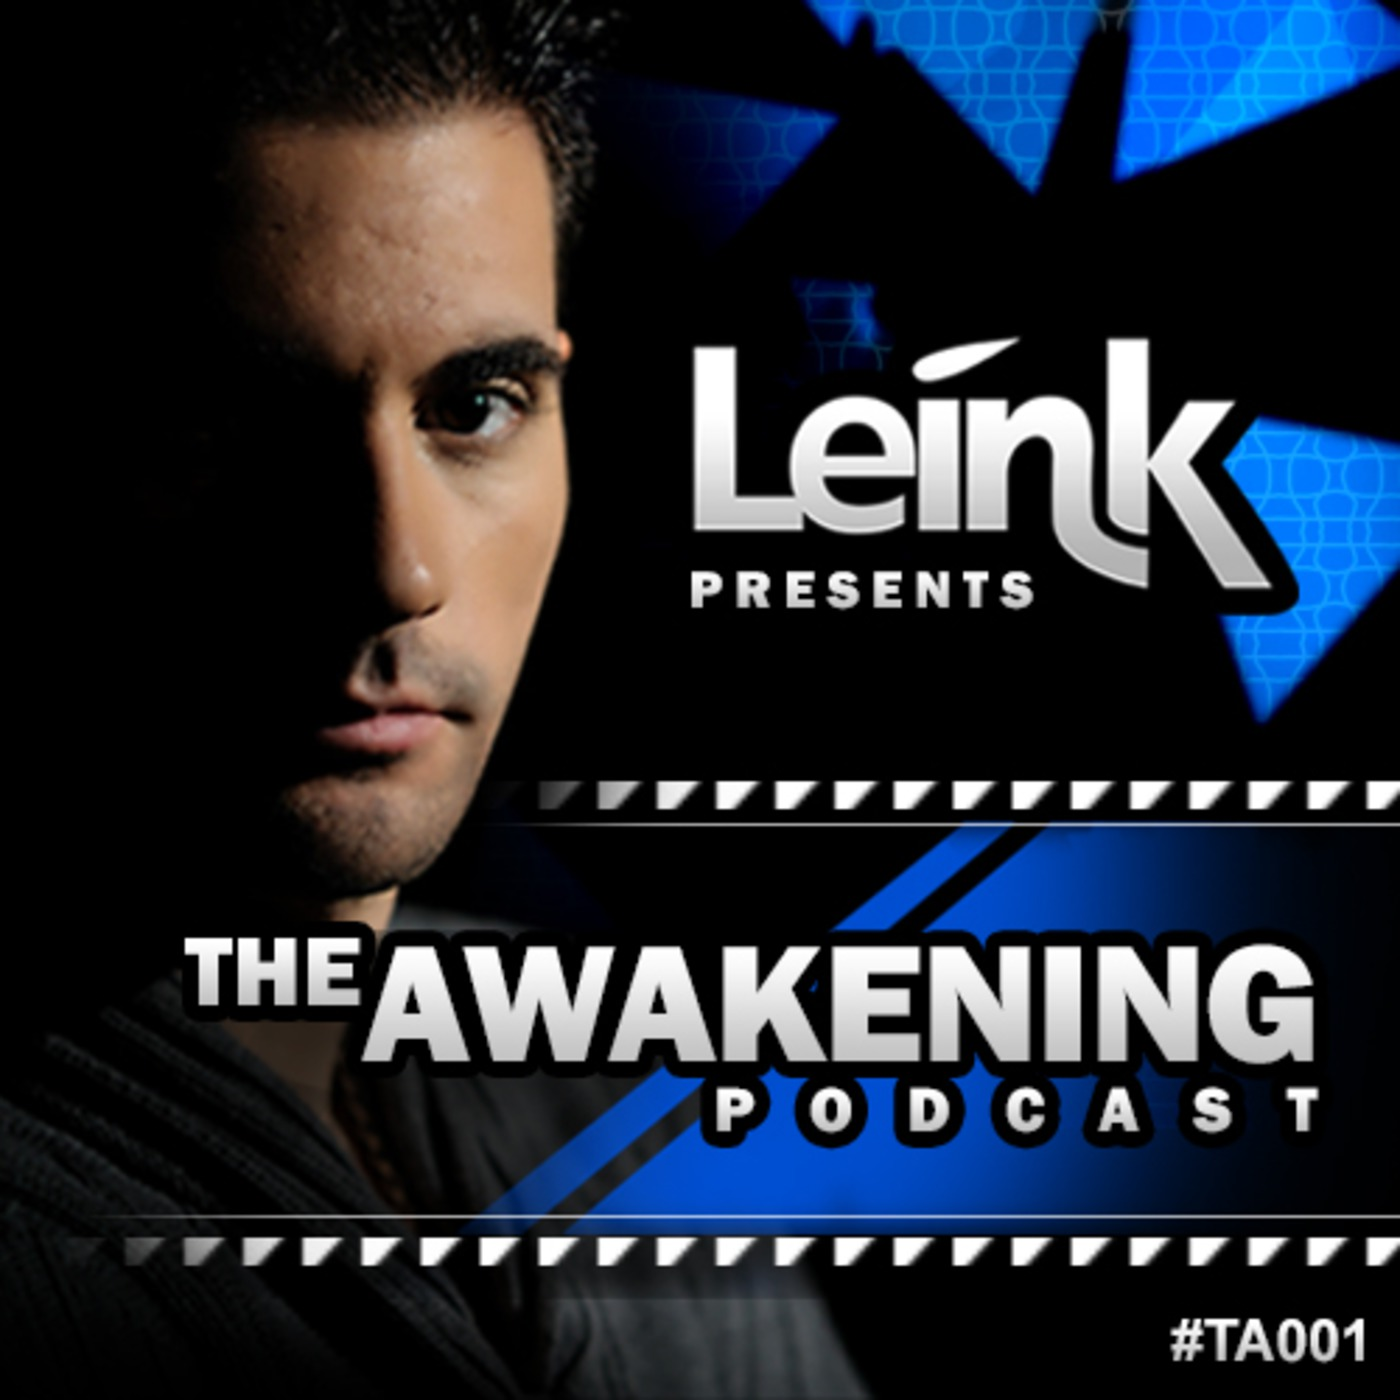 Leink Presents The Awakening Podcast